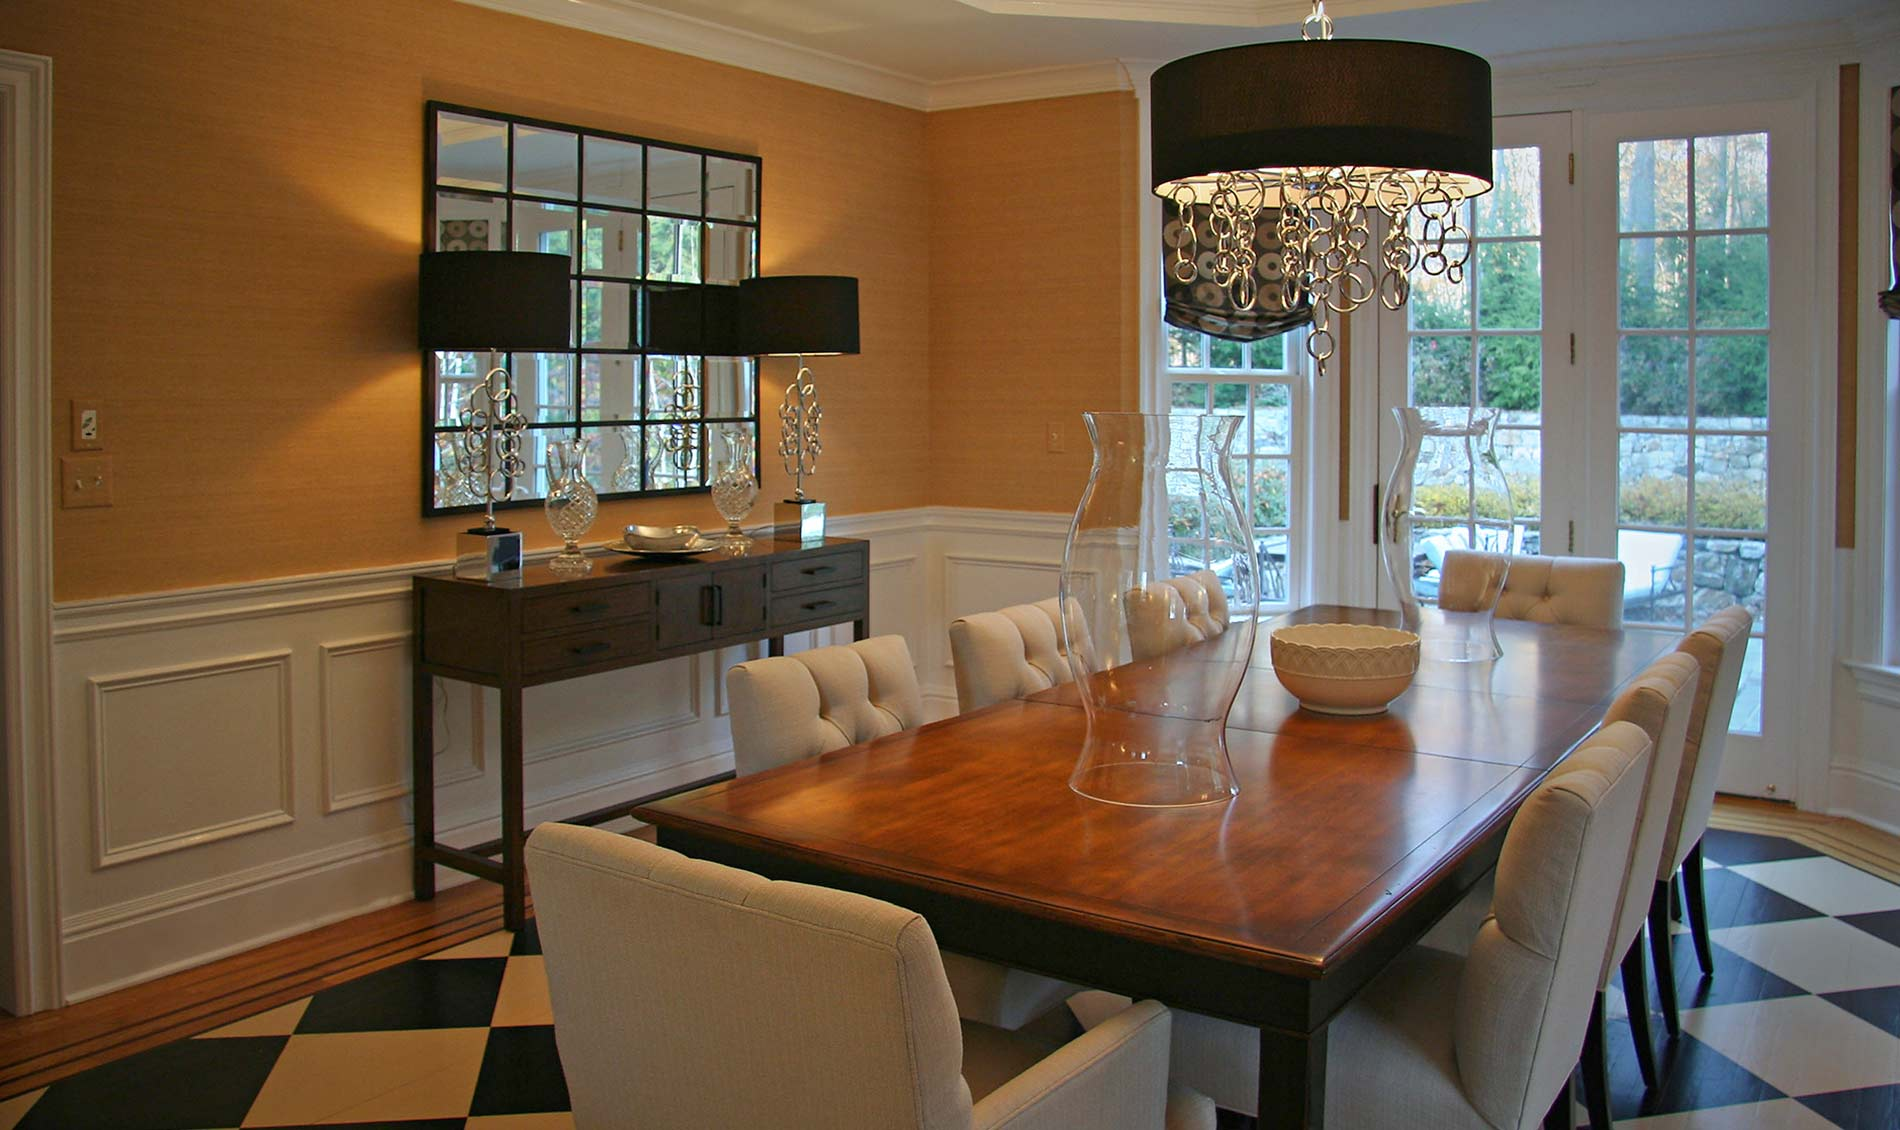 Interior Designer Interior Decorator Princeton Bridgewater NJ New Jersey